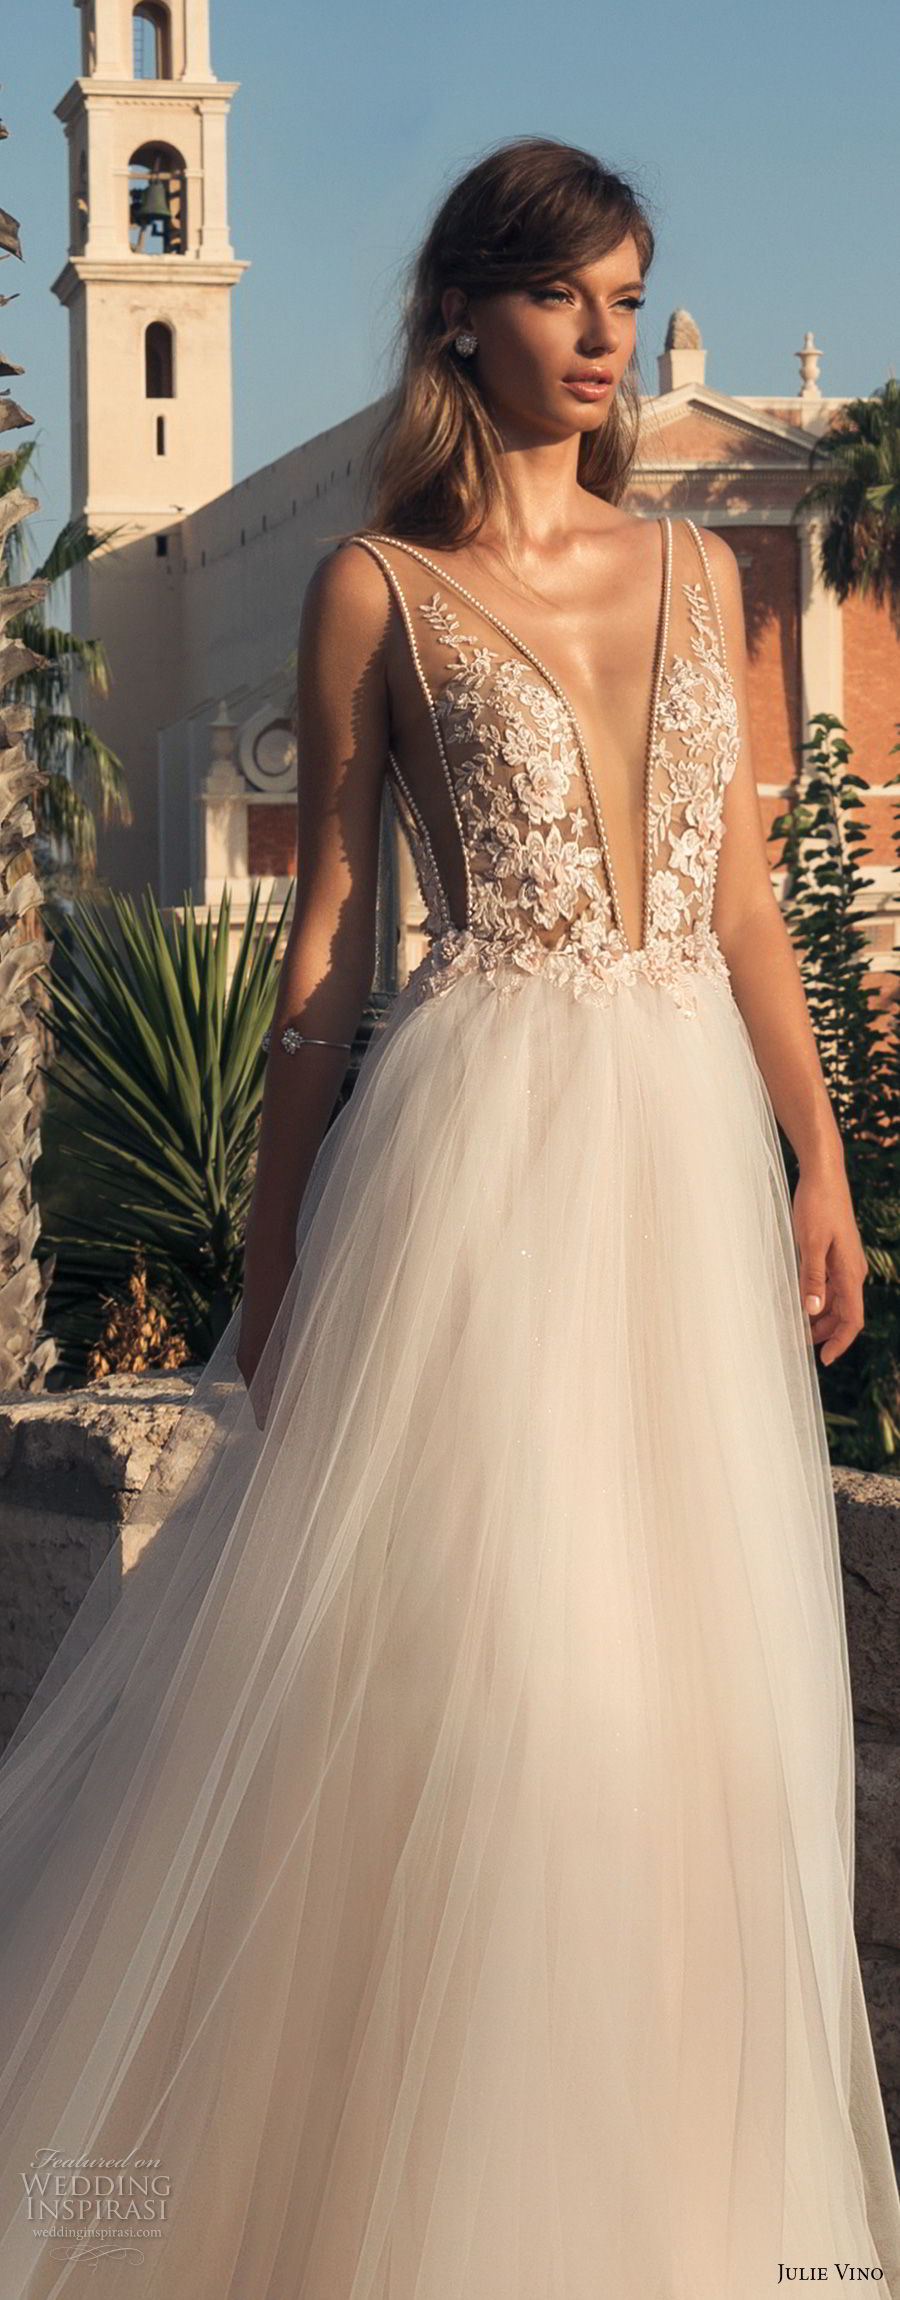 julie vino 2018 bridal sleeveless deep plunging v neck heavily embellished bodice tulle skirt romantic sexy a line wedding dress open back chapel train (60) lv